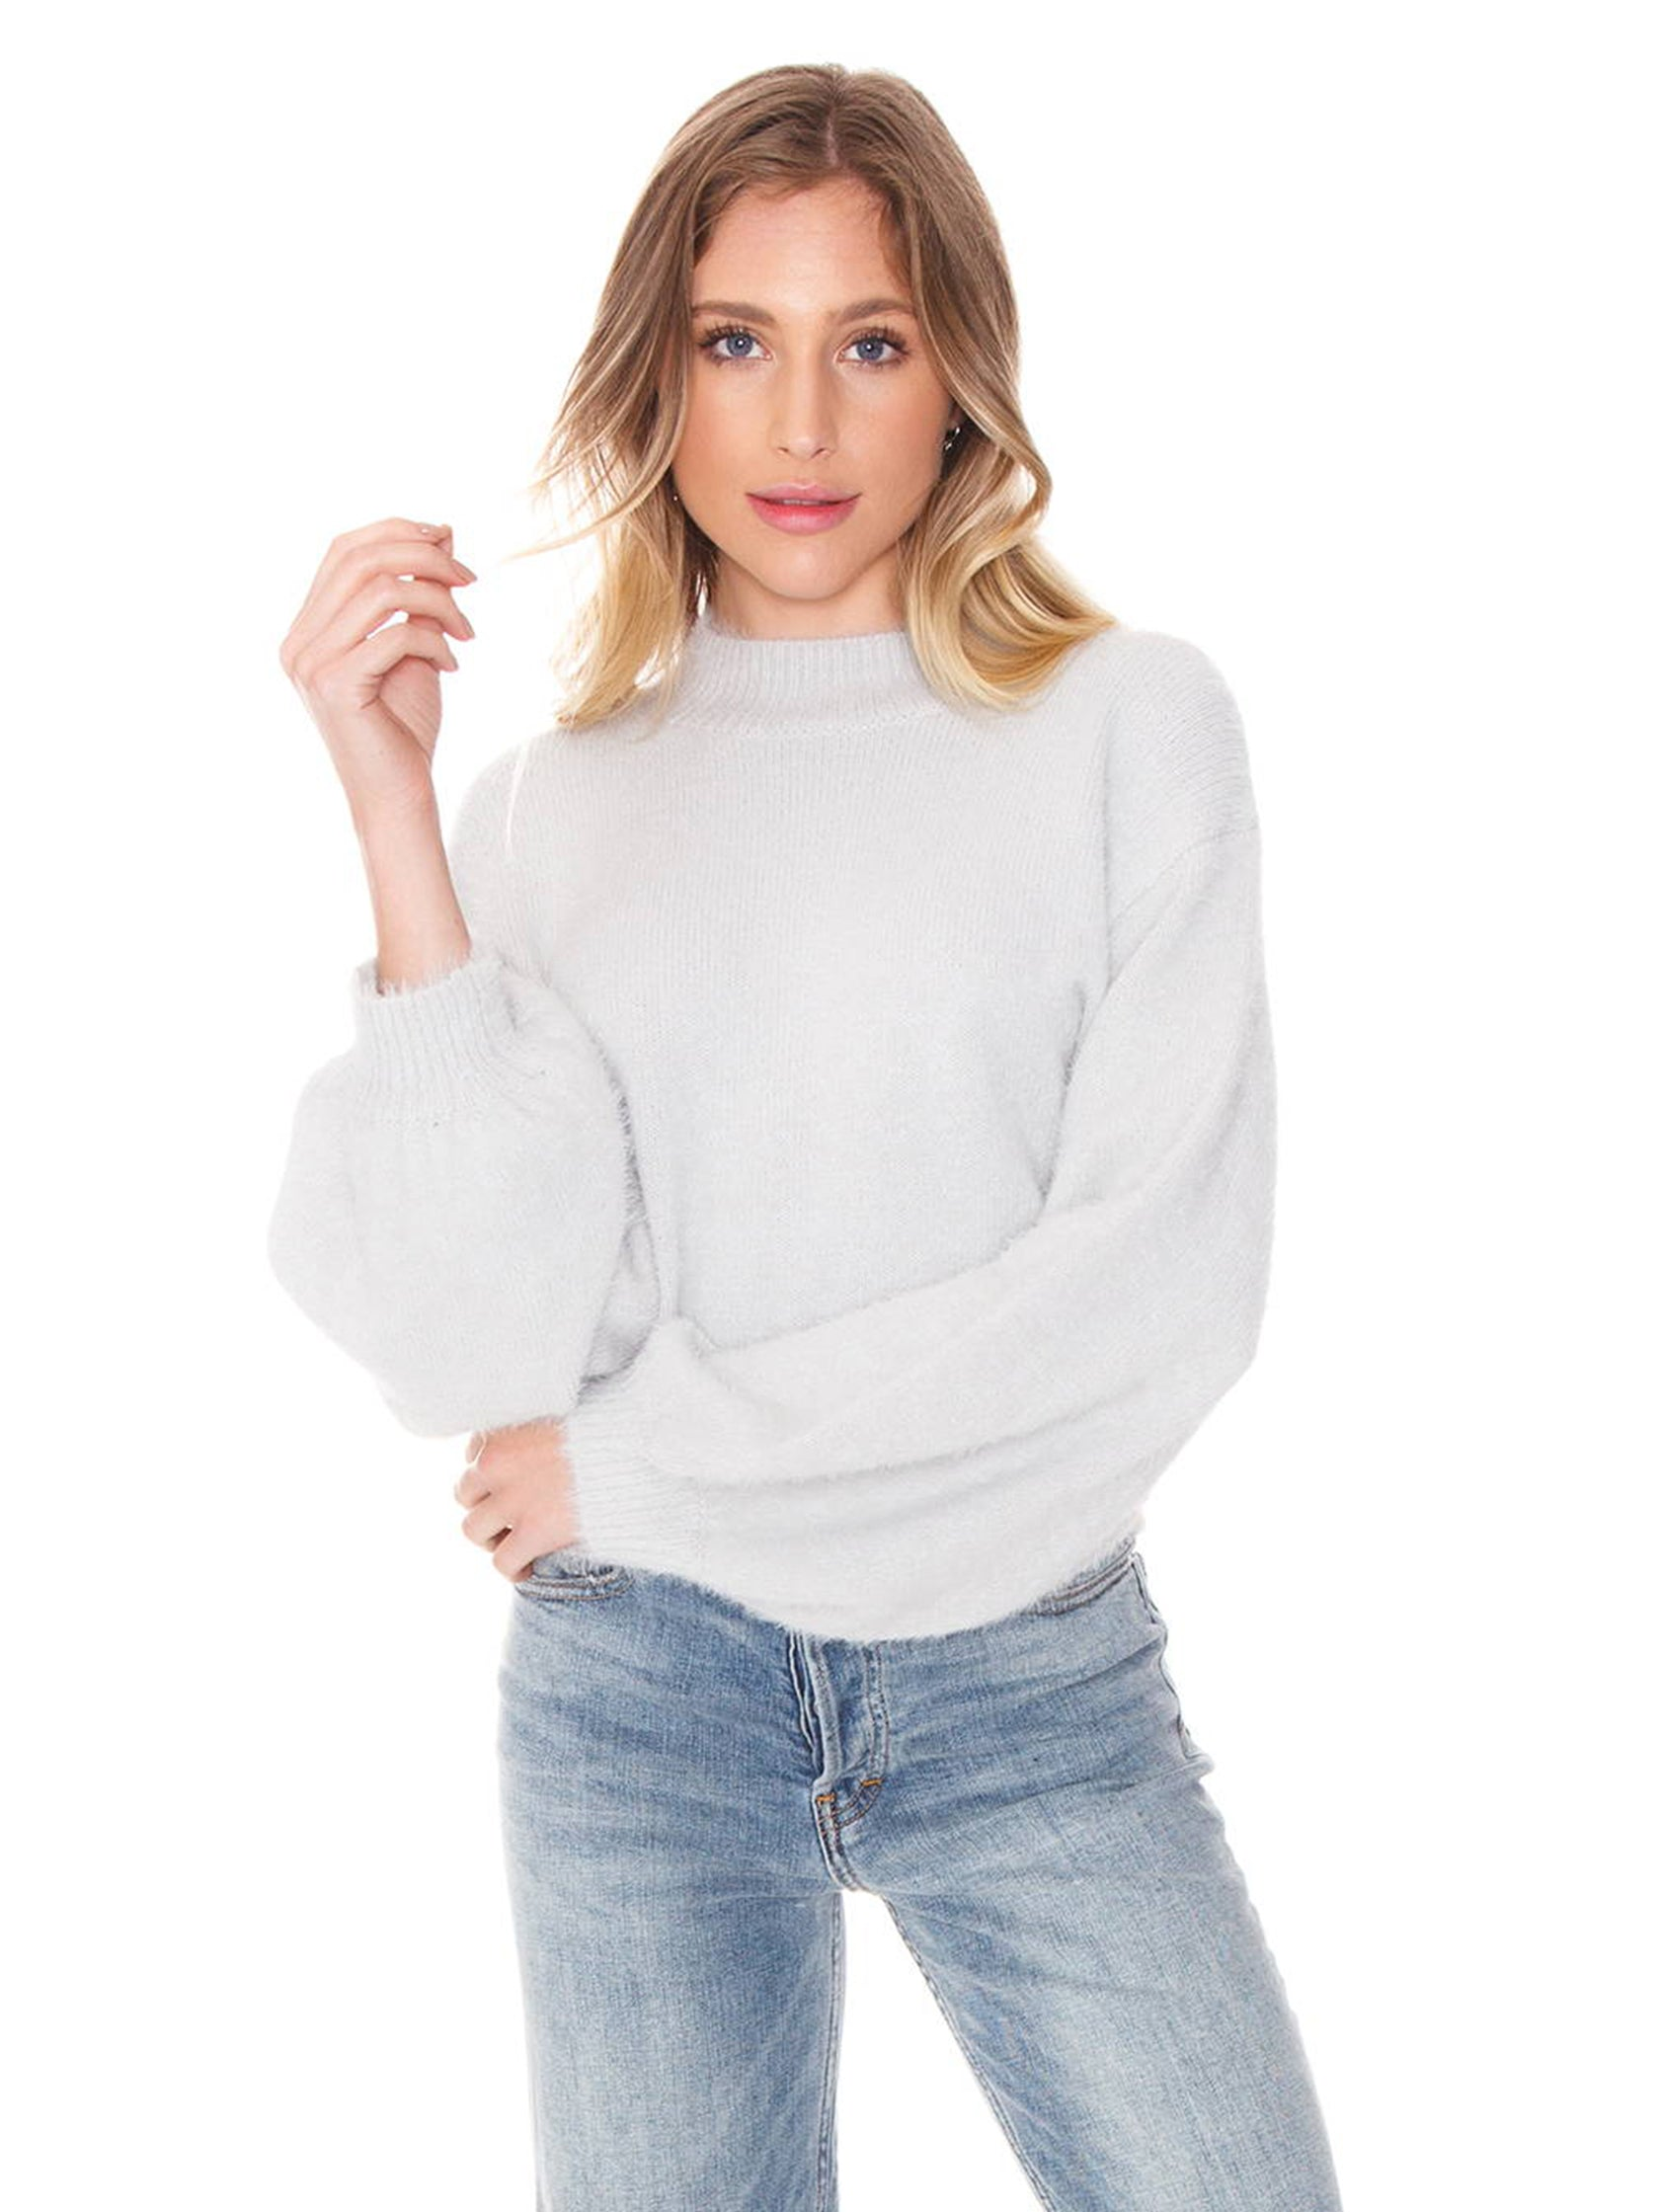 Woman wearing a sweater rental from FashionPass called Nicole Sweater